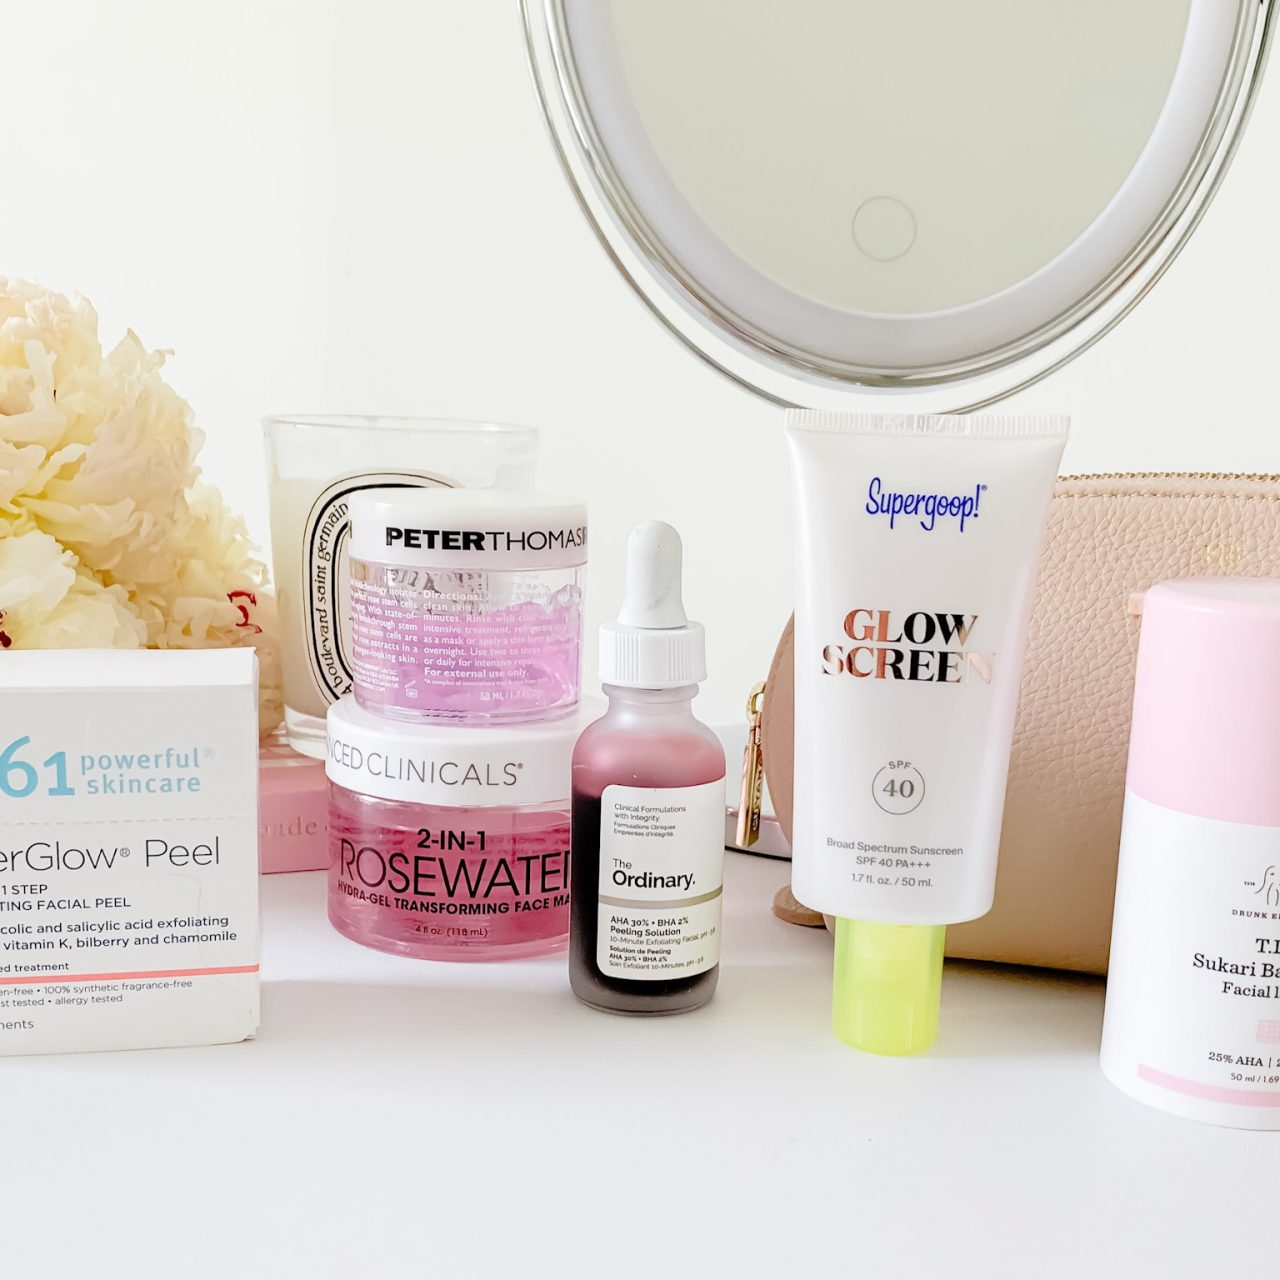 MY FAVORITE SKINCARE PRODUCTS FOR GLOWING SKIN